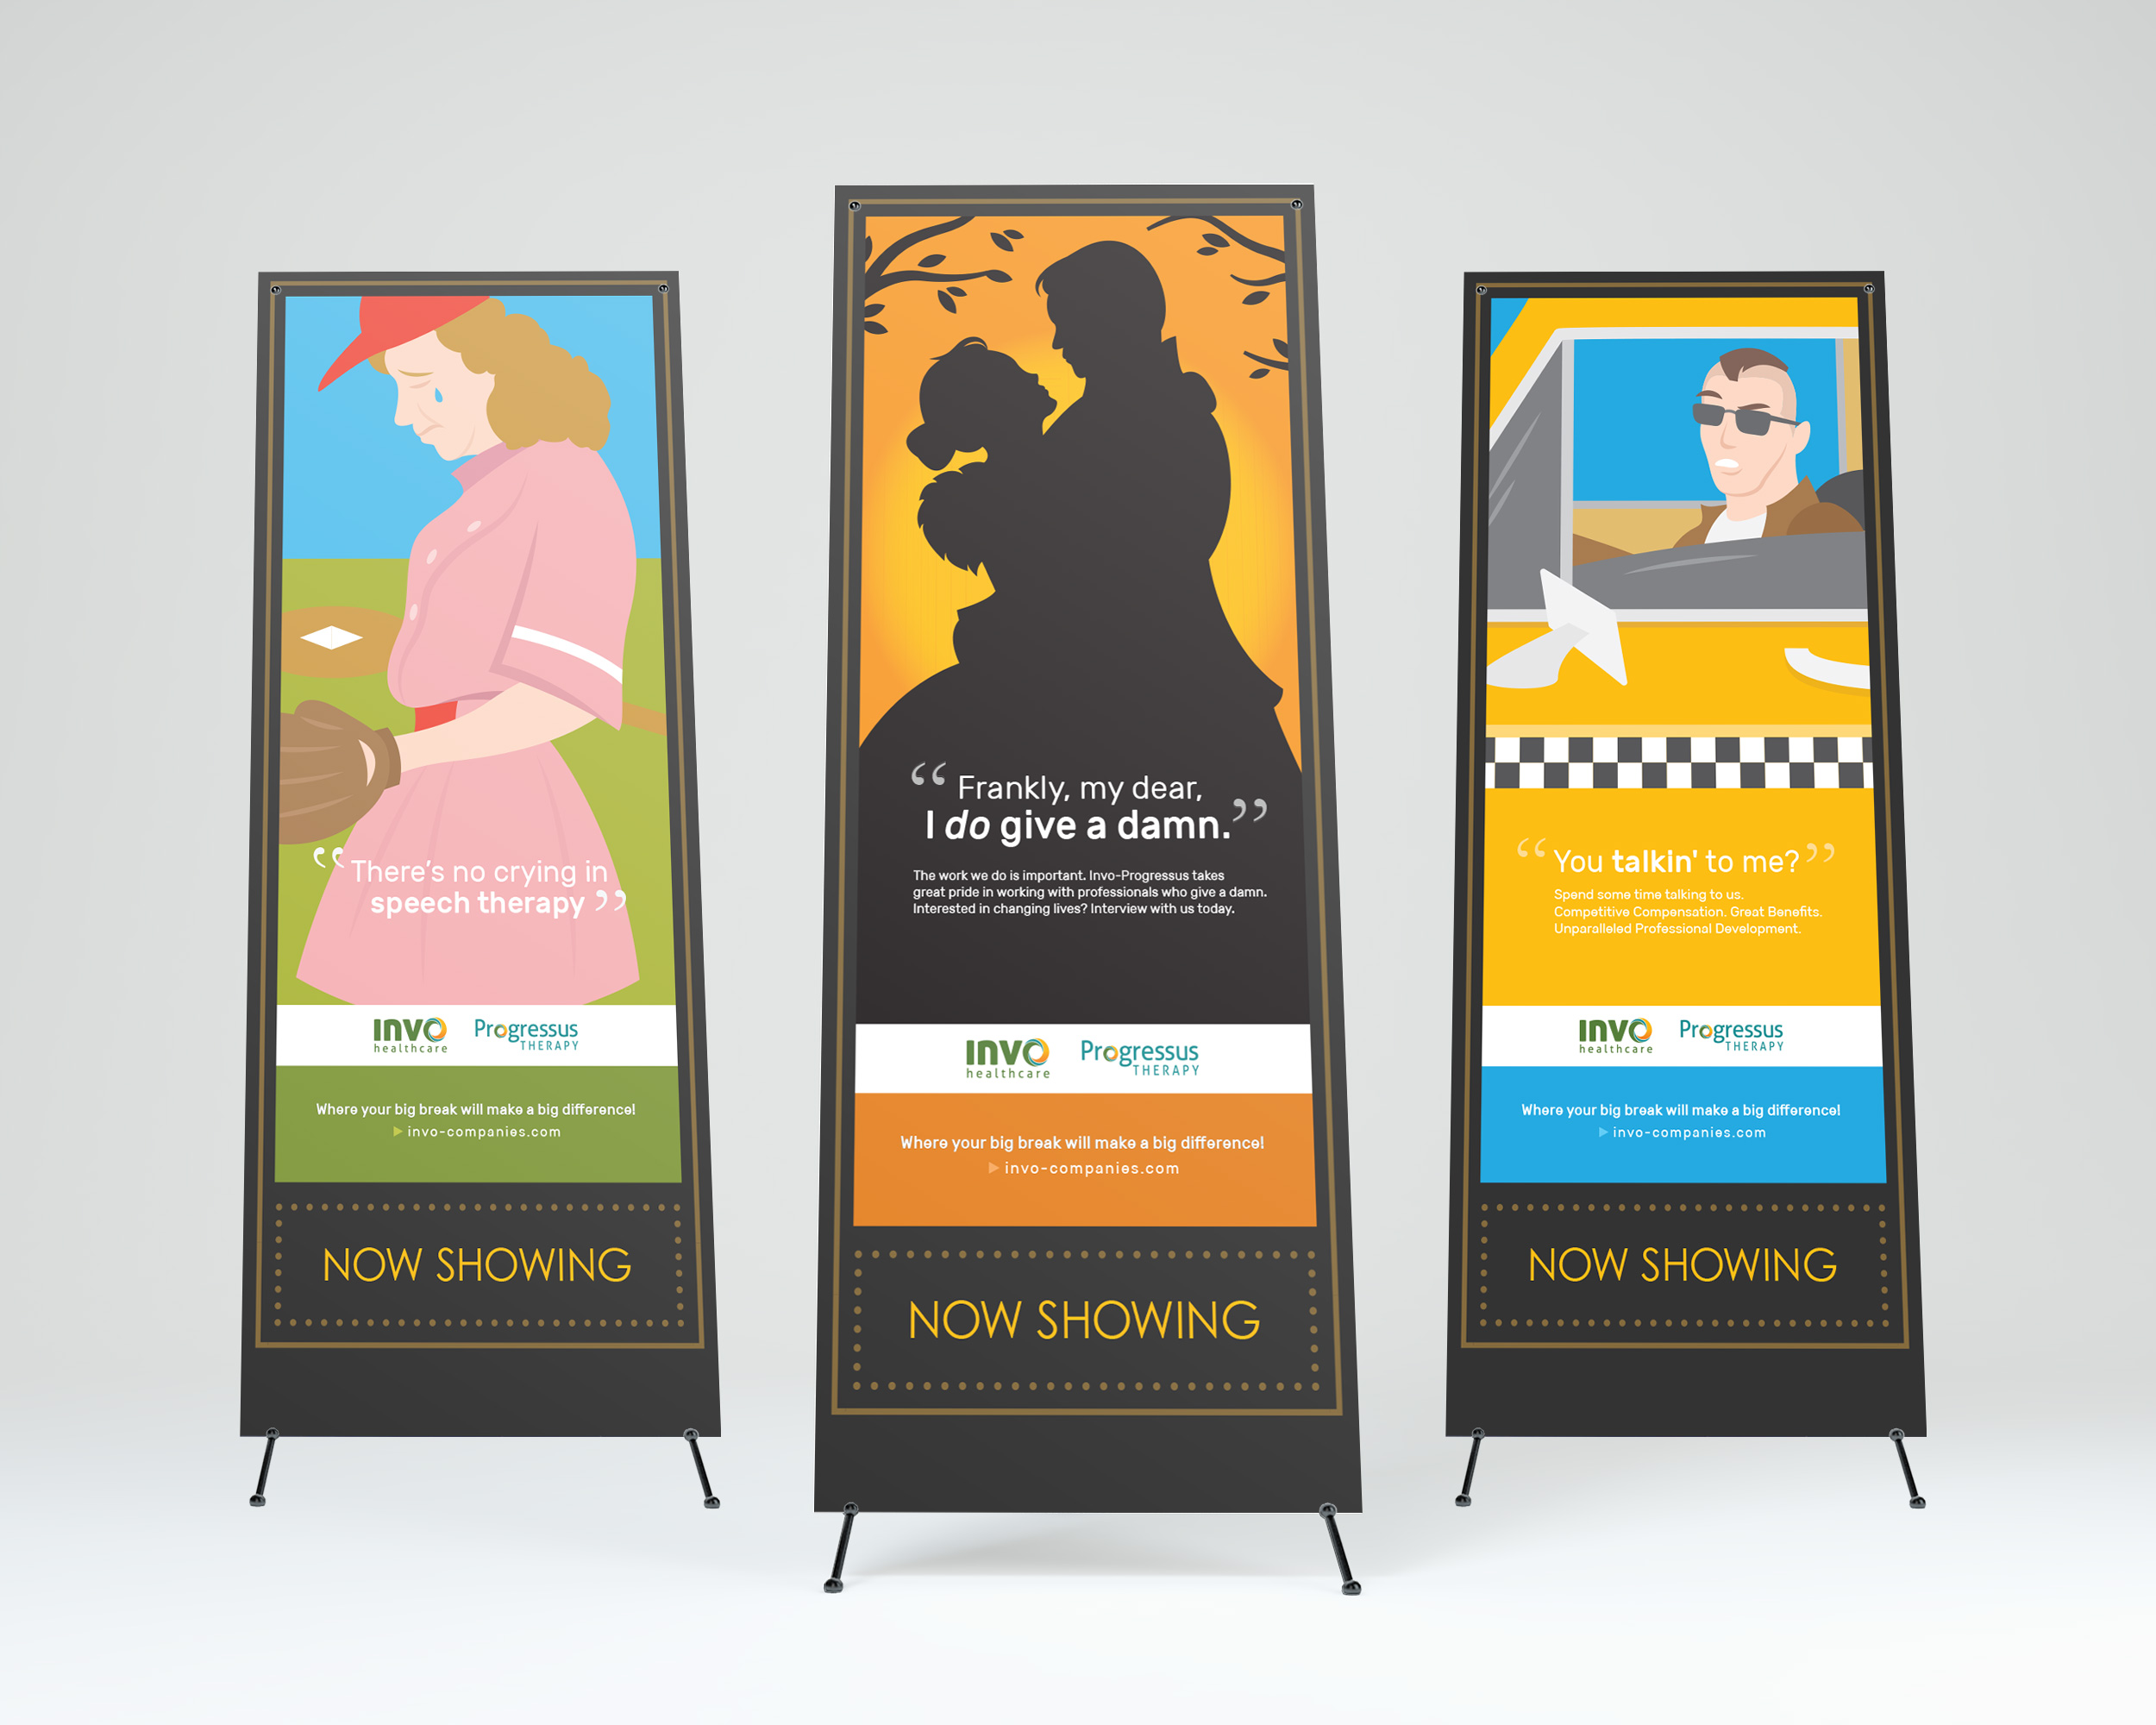 Invo Health: Vector Illustrations on Vertical Banners